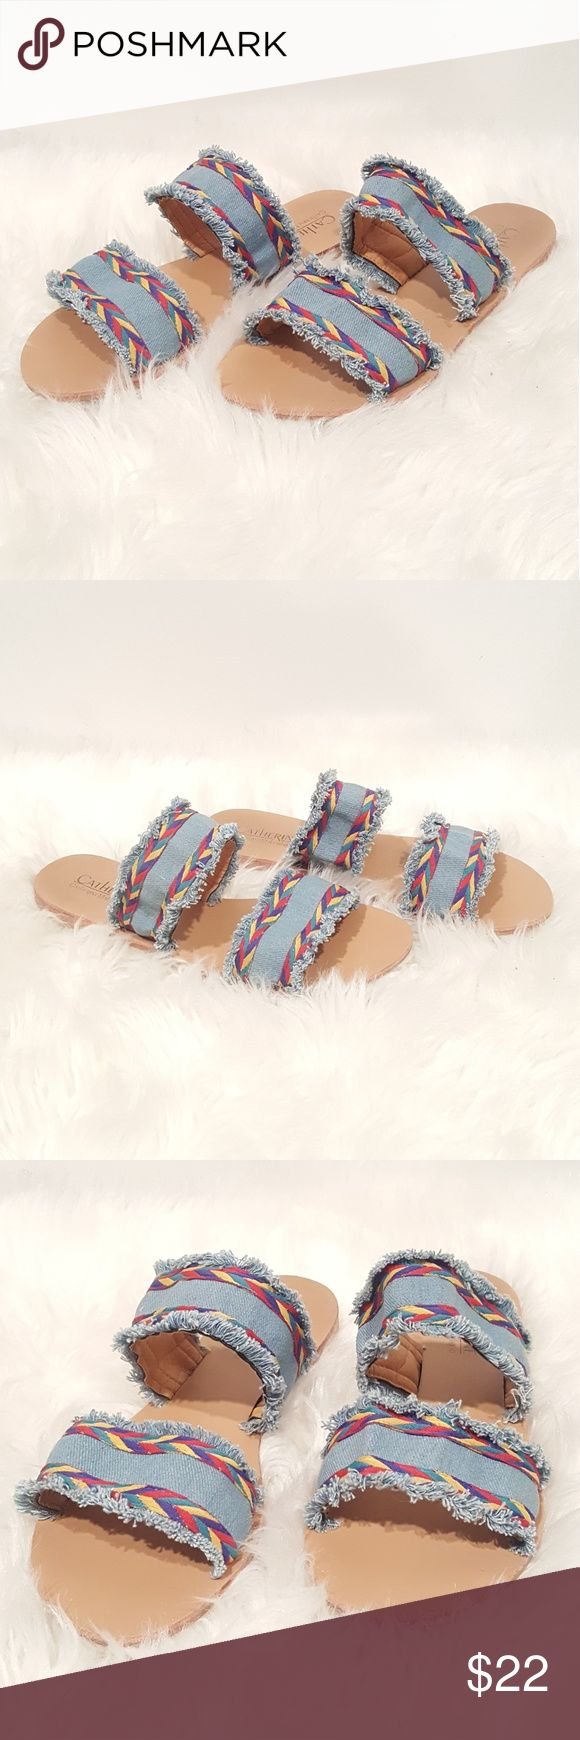 Denim Aztec Flats Flat slides. Sz 10 but fit like a 9. Reasonable offers considered. Cynthia Rowley Shoes